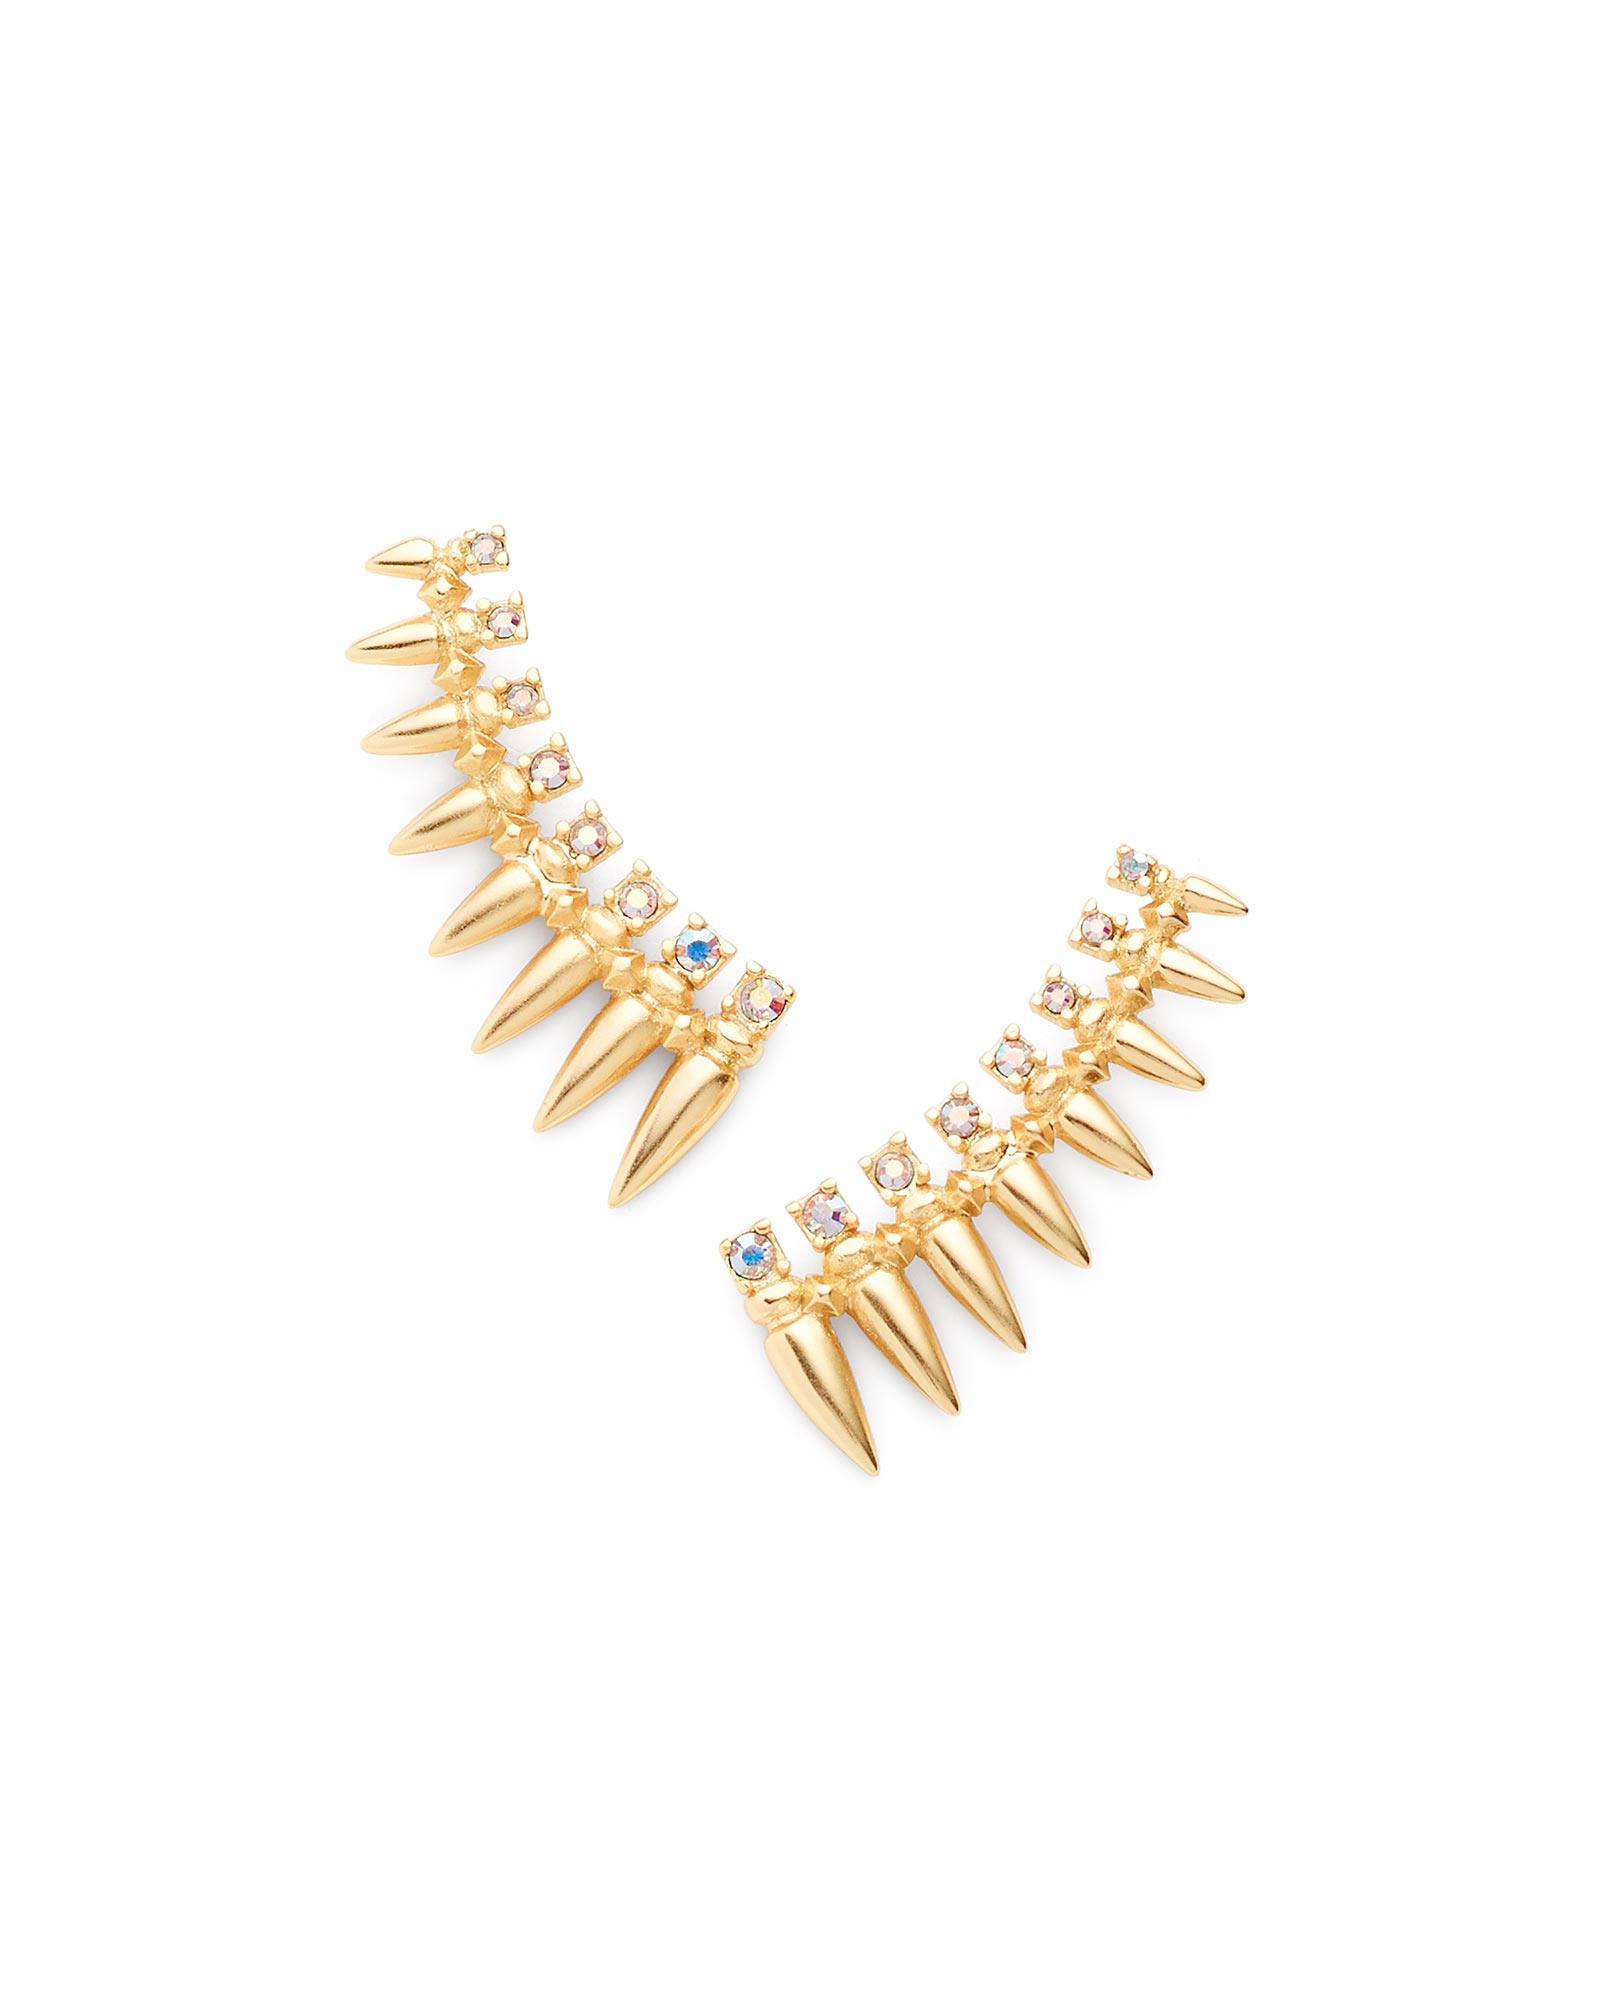 Loulou Ear Climbers in Gold